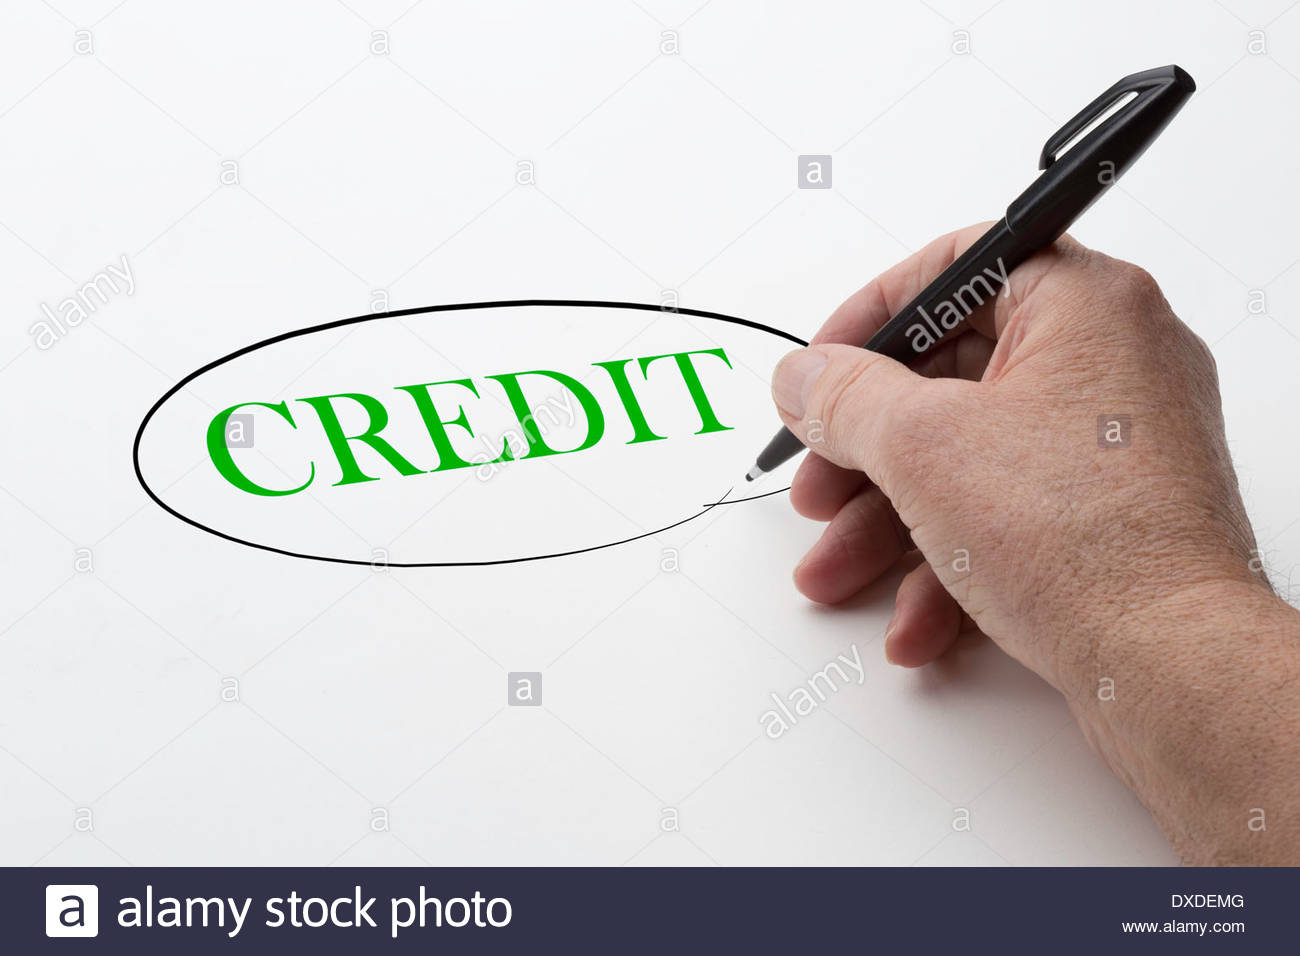 Man hand holding a black pen and encircling the word credit. - Stock Image